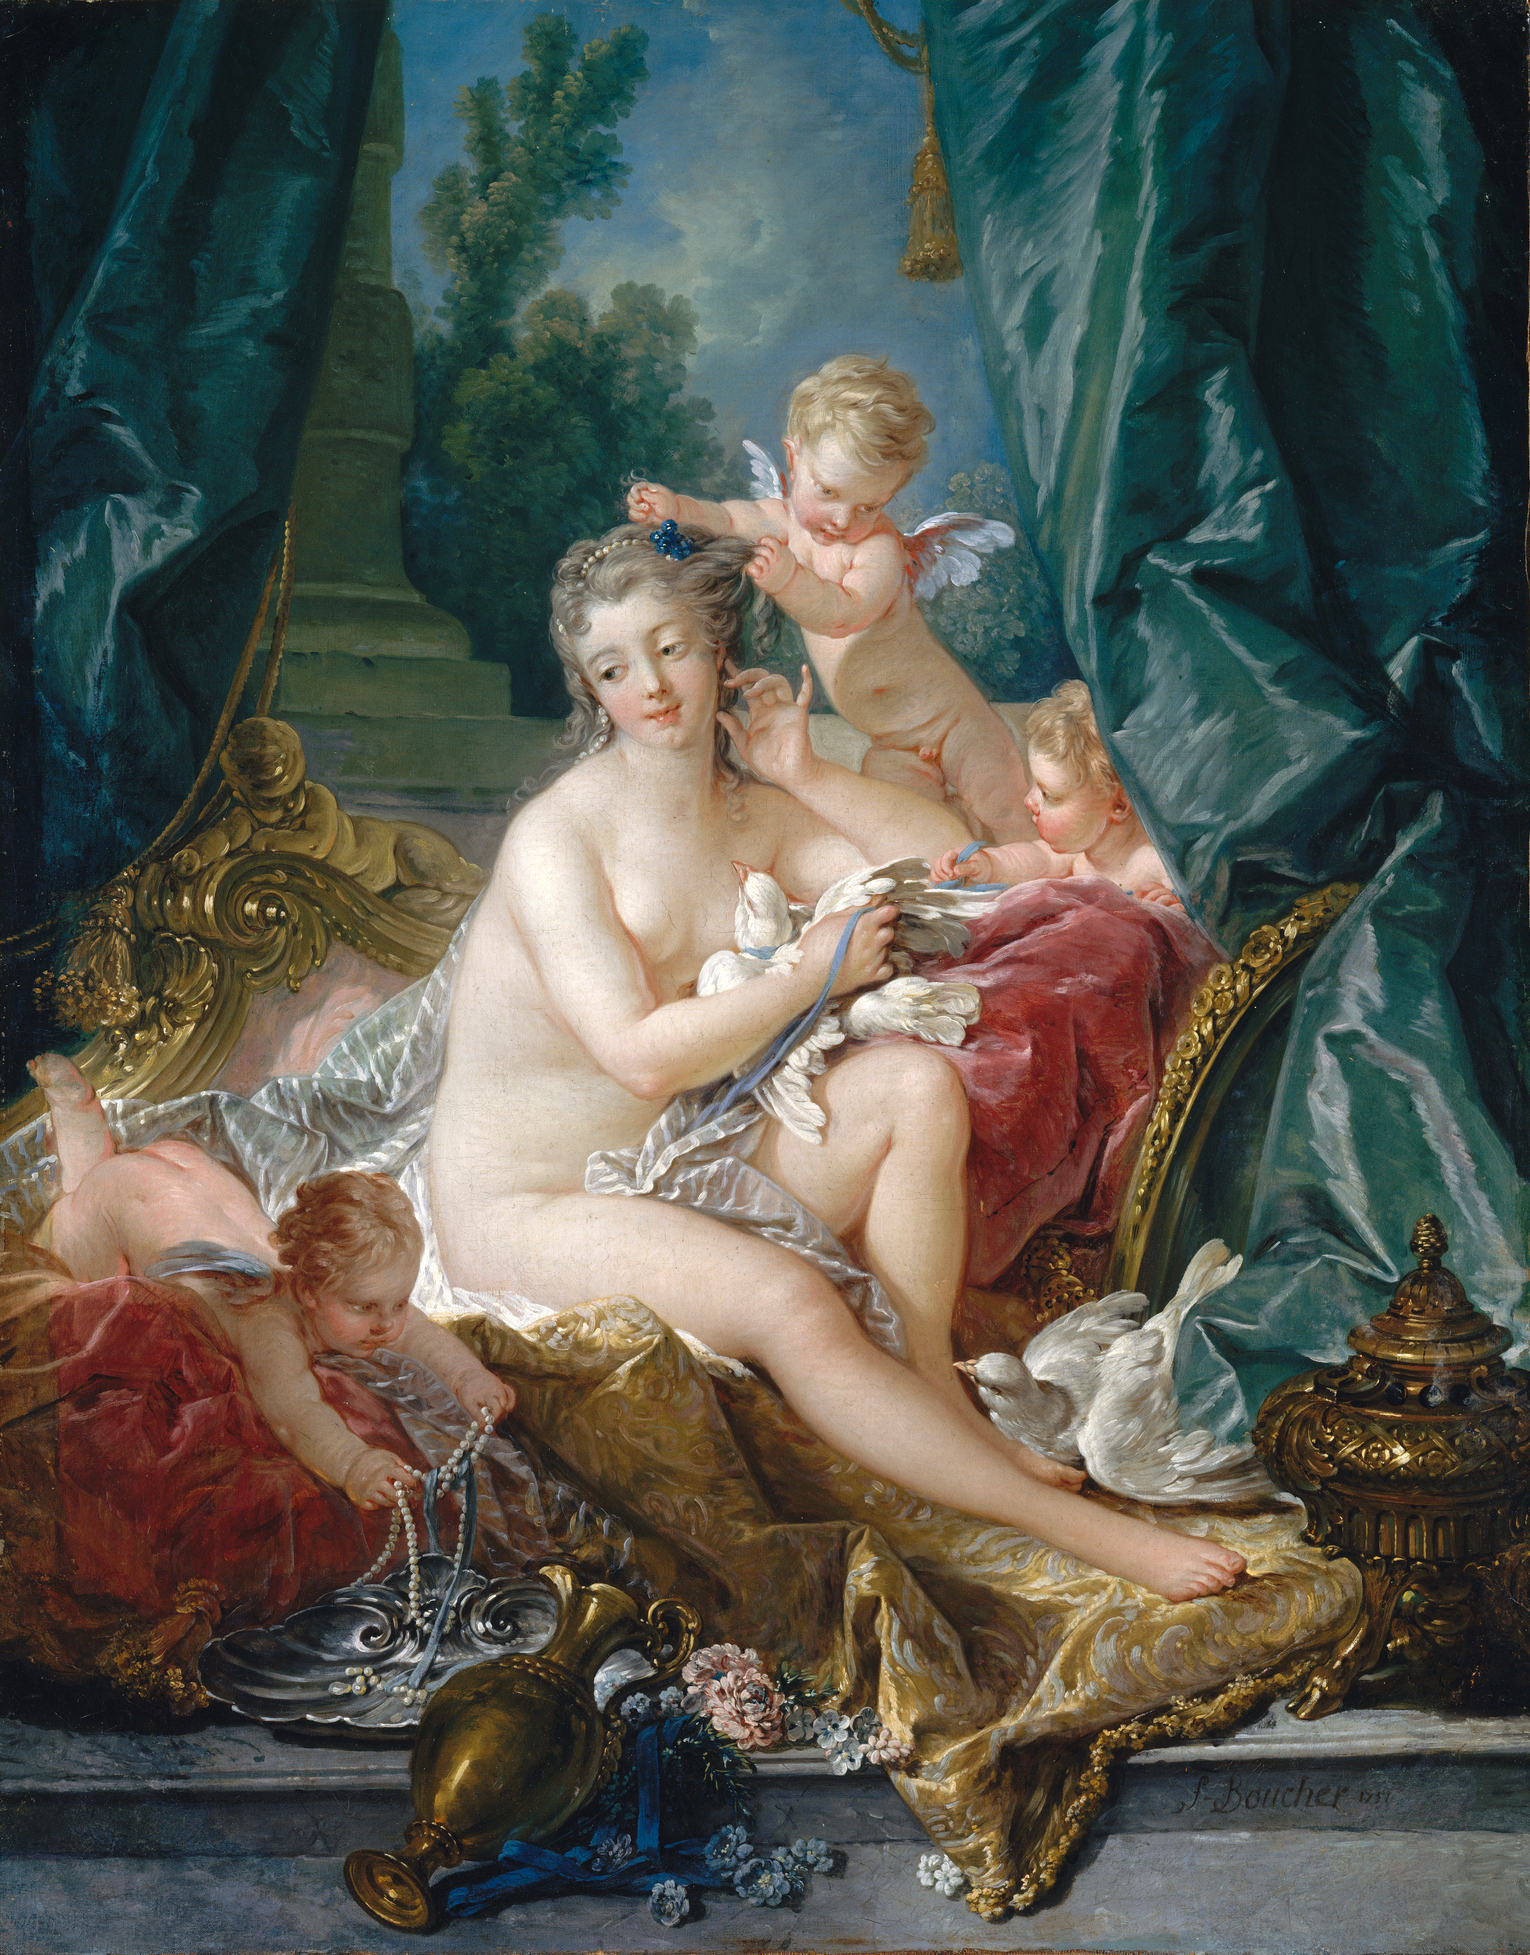 The Toilette of Venus by François Boucher